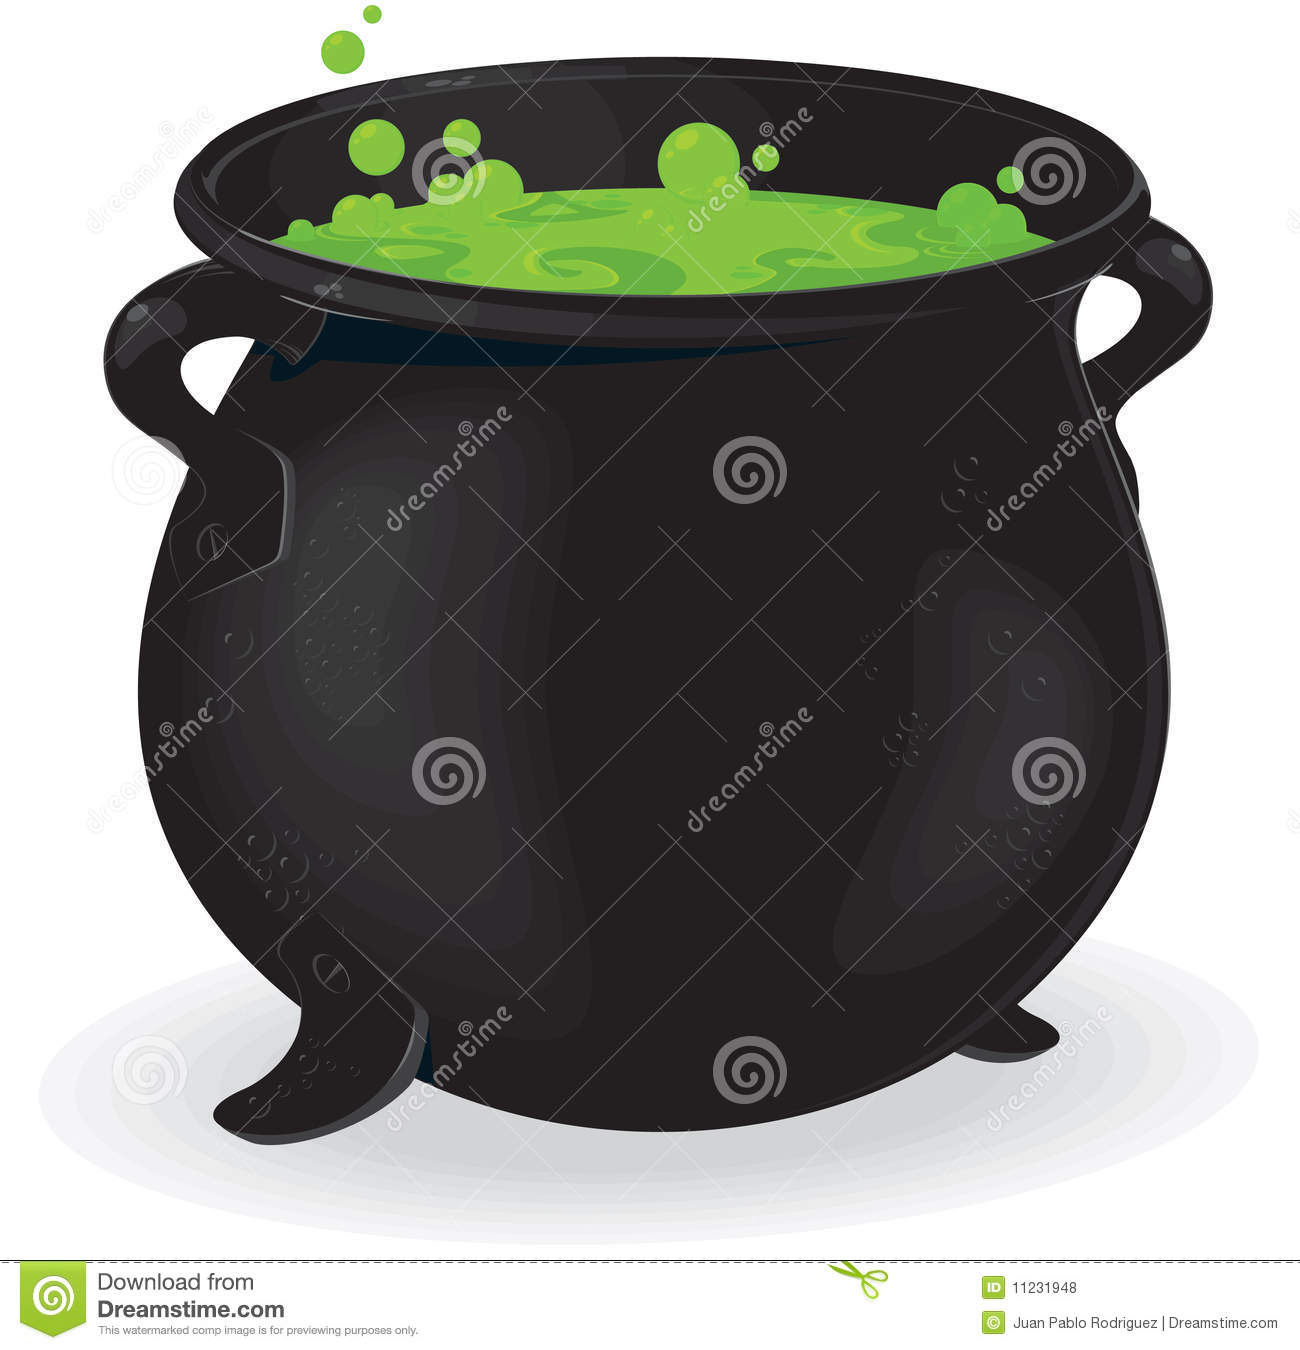 Free Green Cow Stock Photo Images Of Home Design Biogas Diagram Image 36146824 Witch Cauldron Royalty Photos